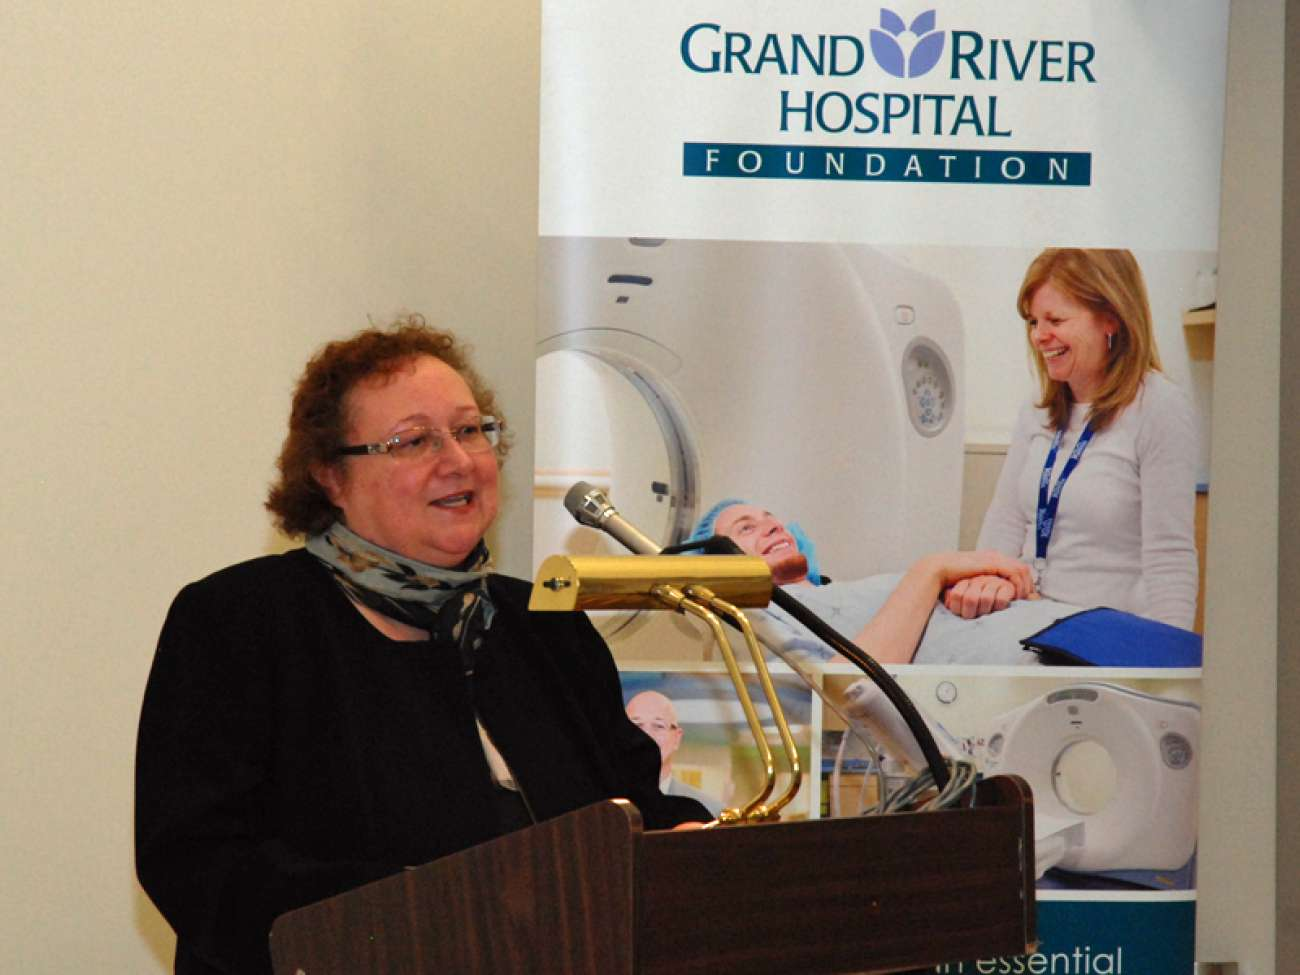 GRH Foundation president and CEO Tracey Bailey says 3,333 donors and groups contributed to the new CT scanner.